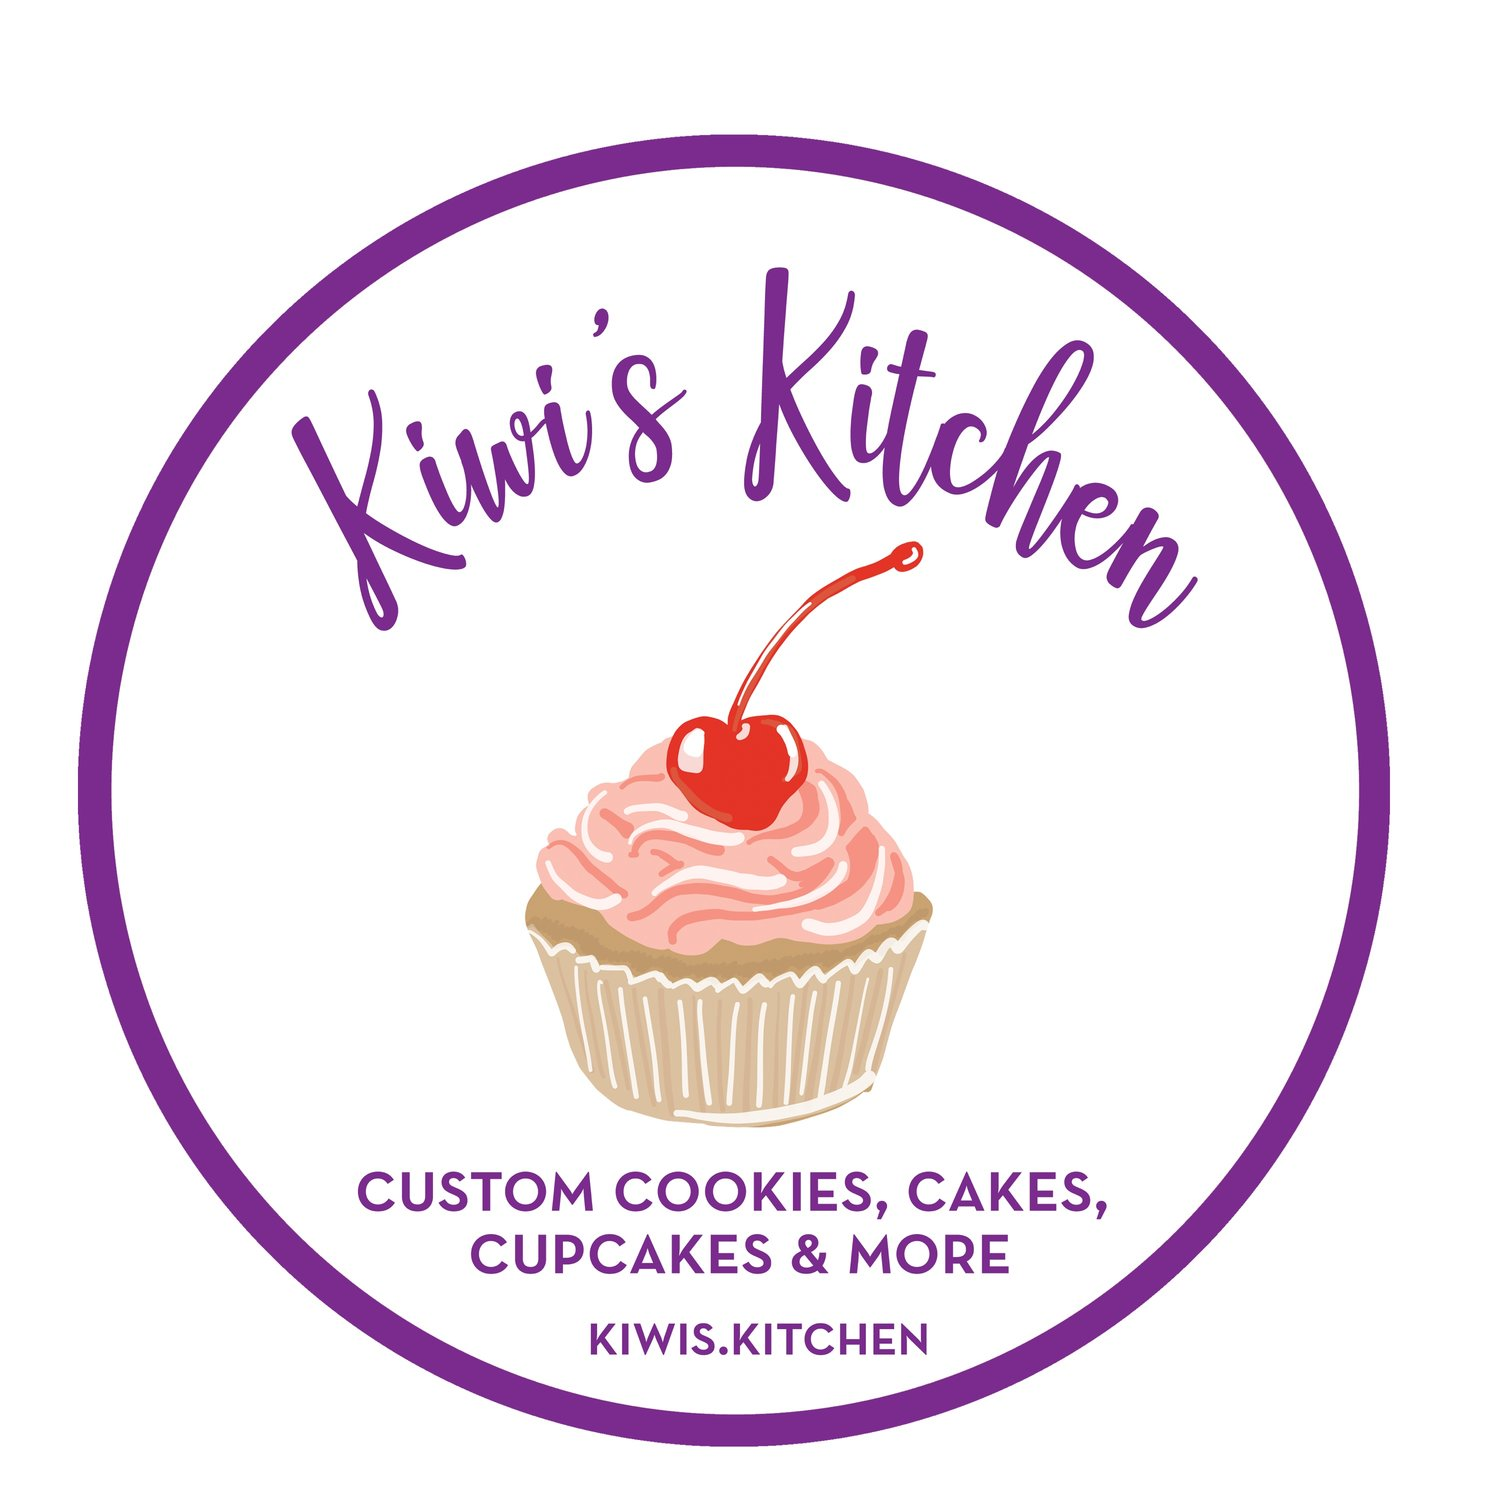 Kiwi's Kitchen